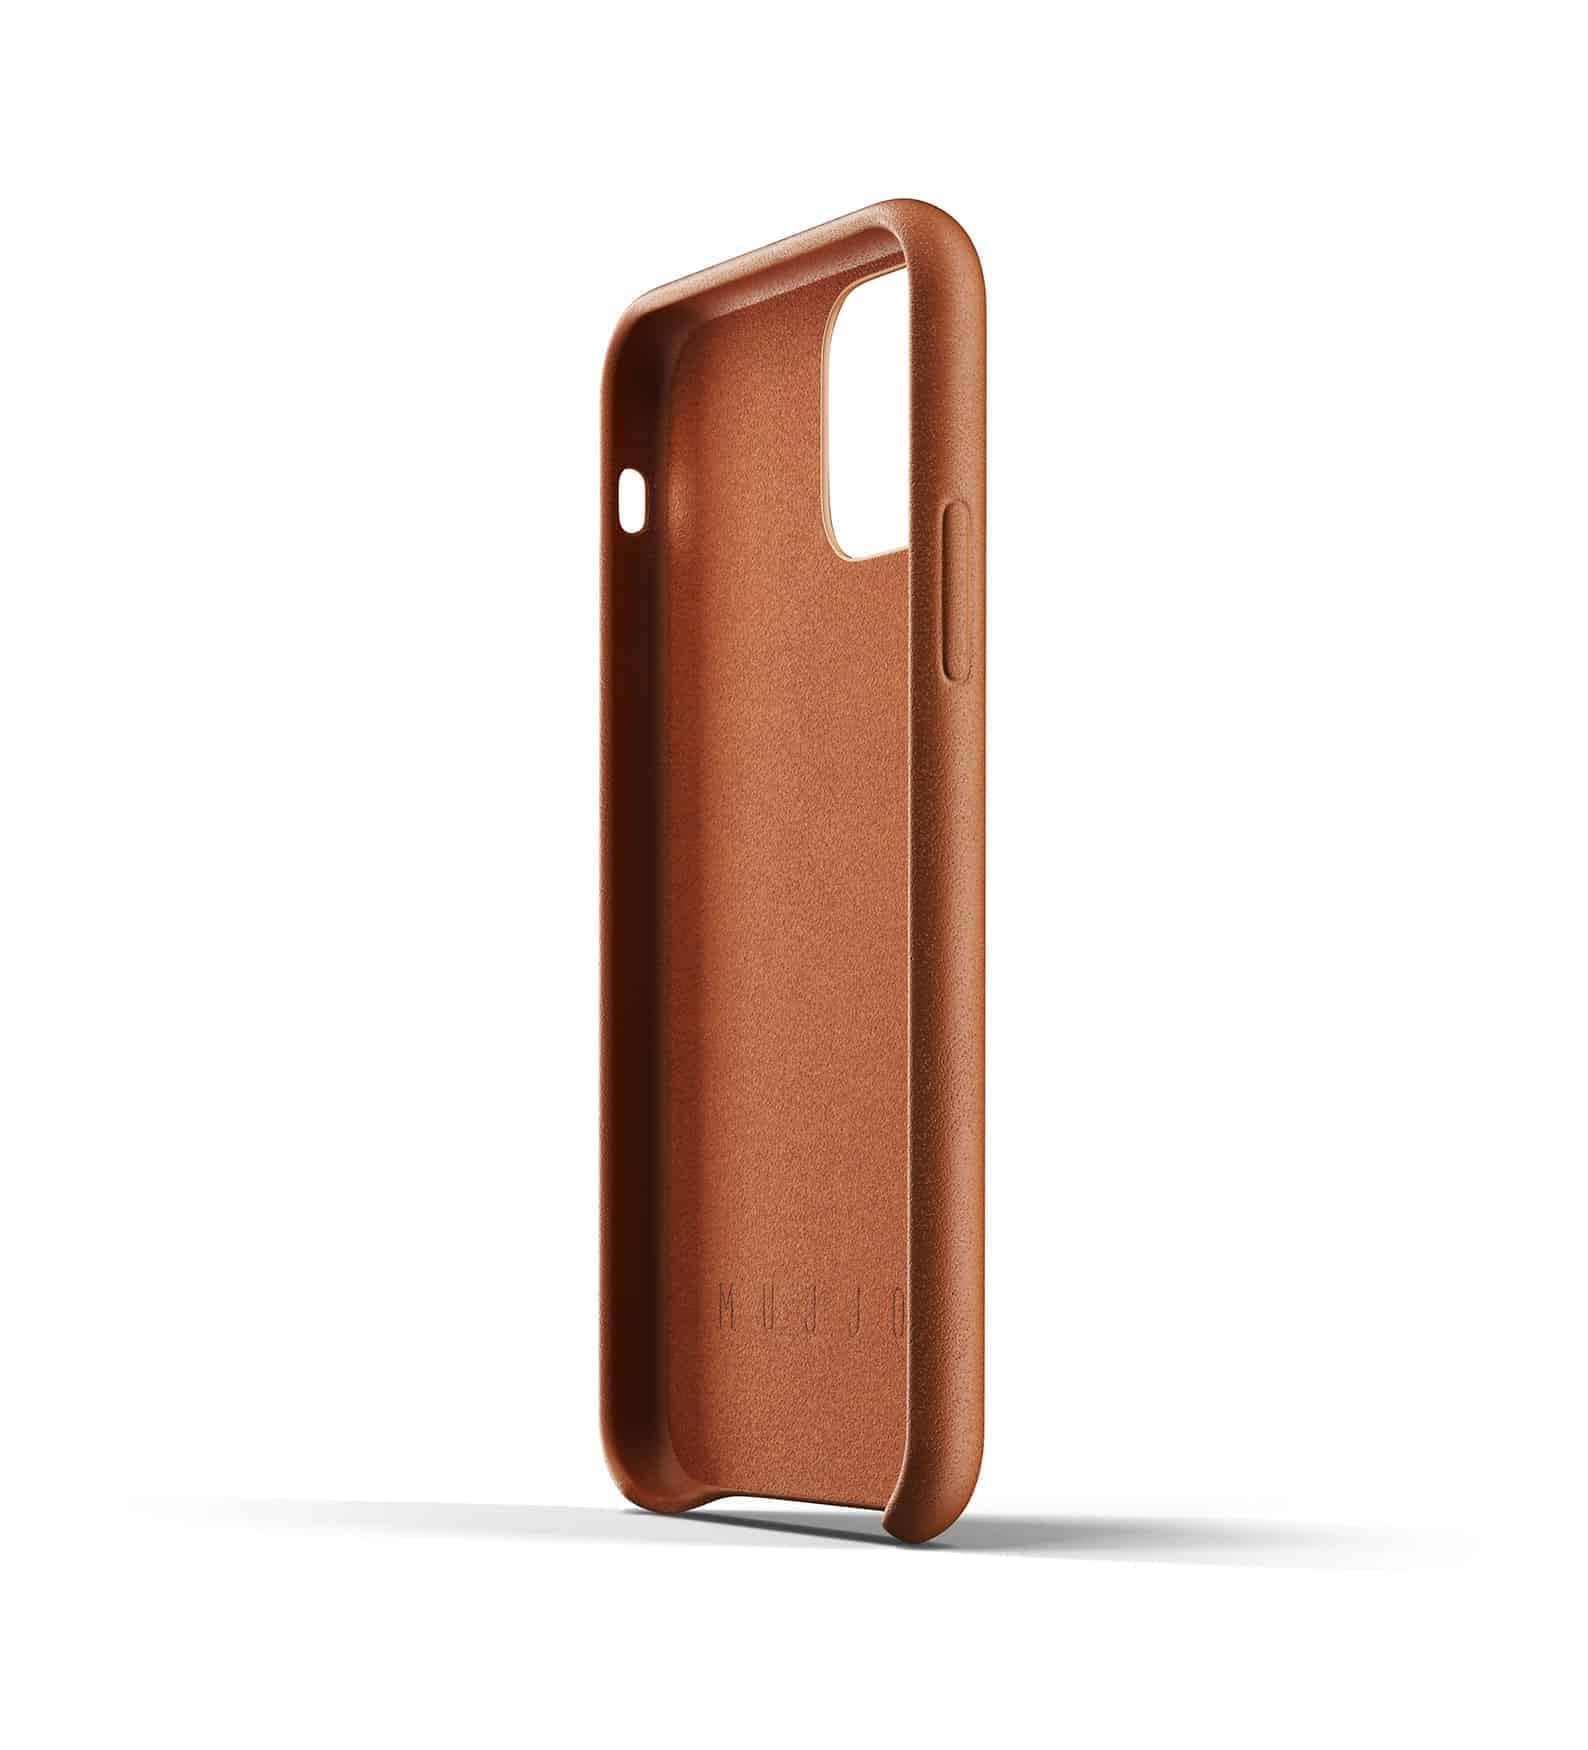 Full leather case for iPhone 11 Pro Tan Thumbnail 05